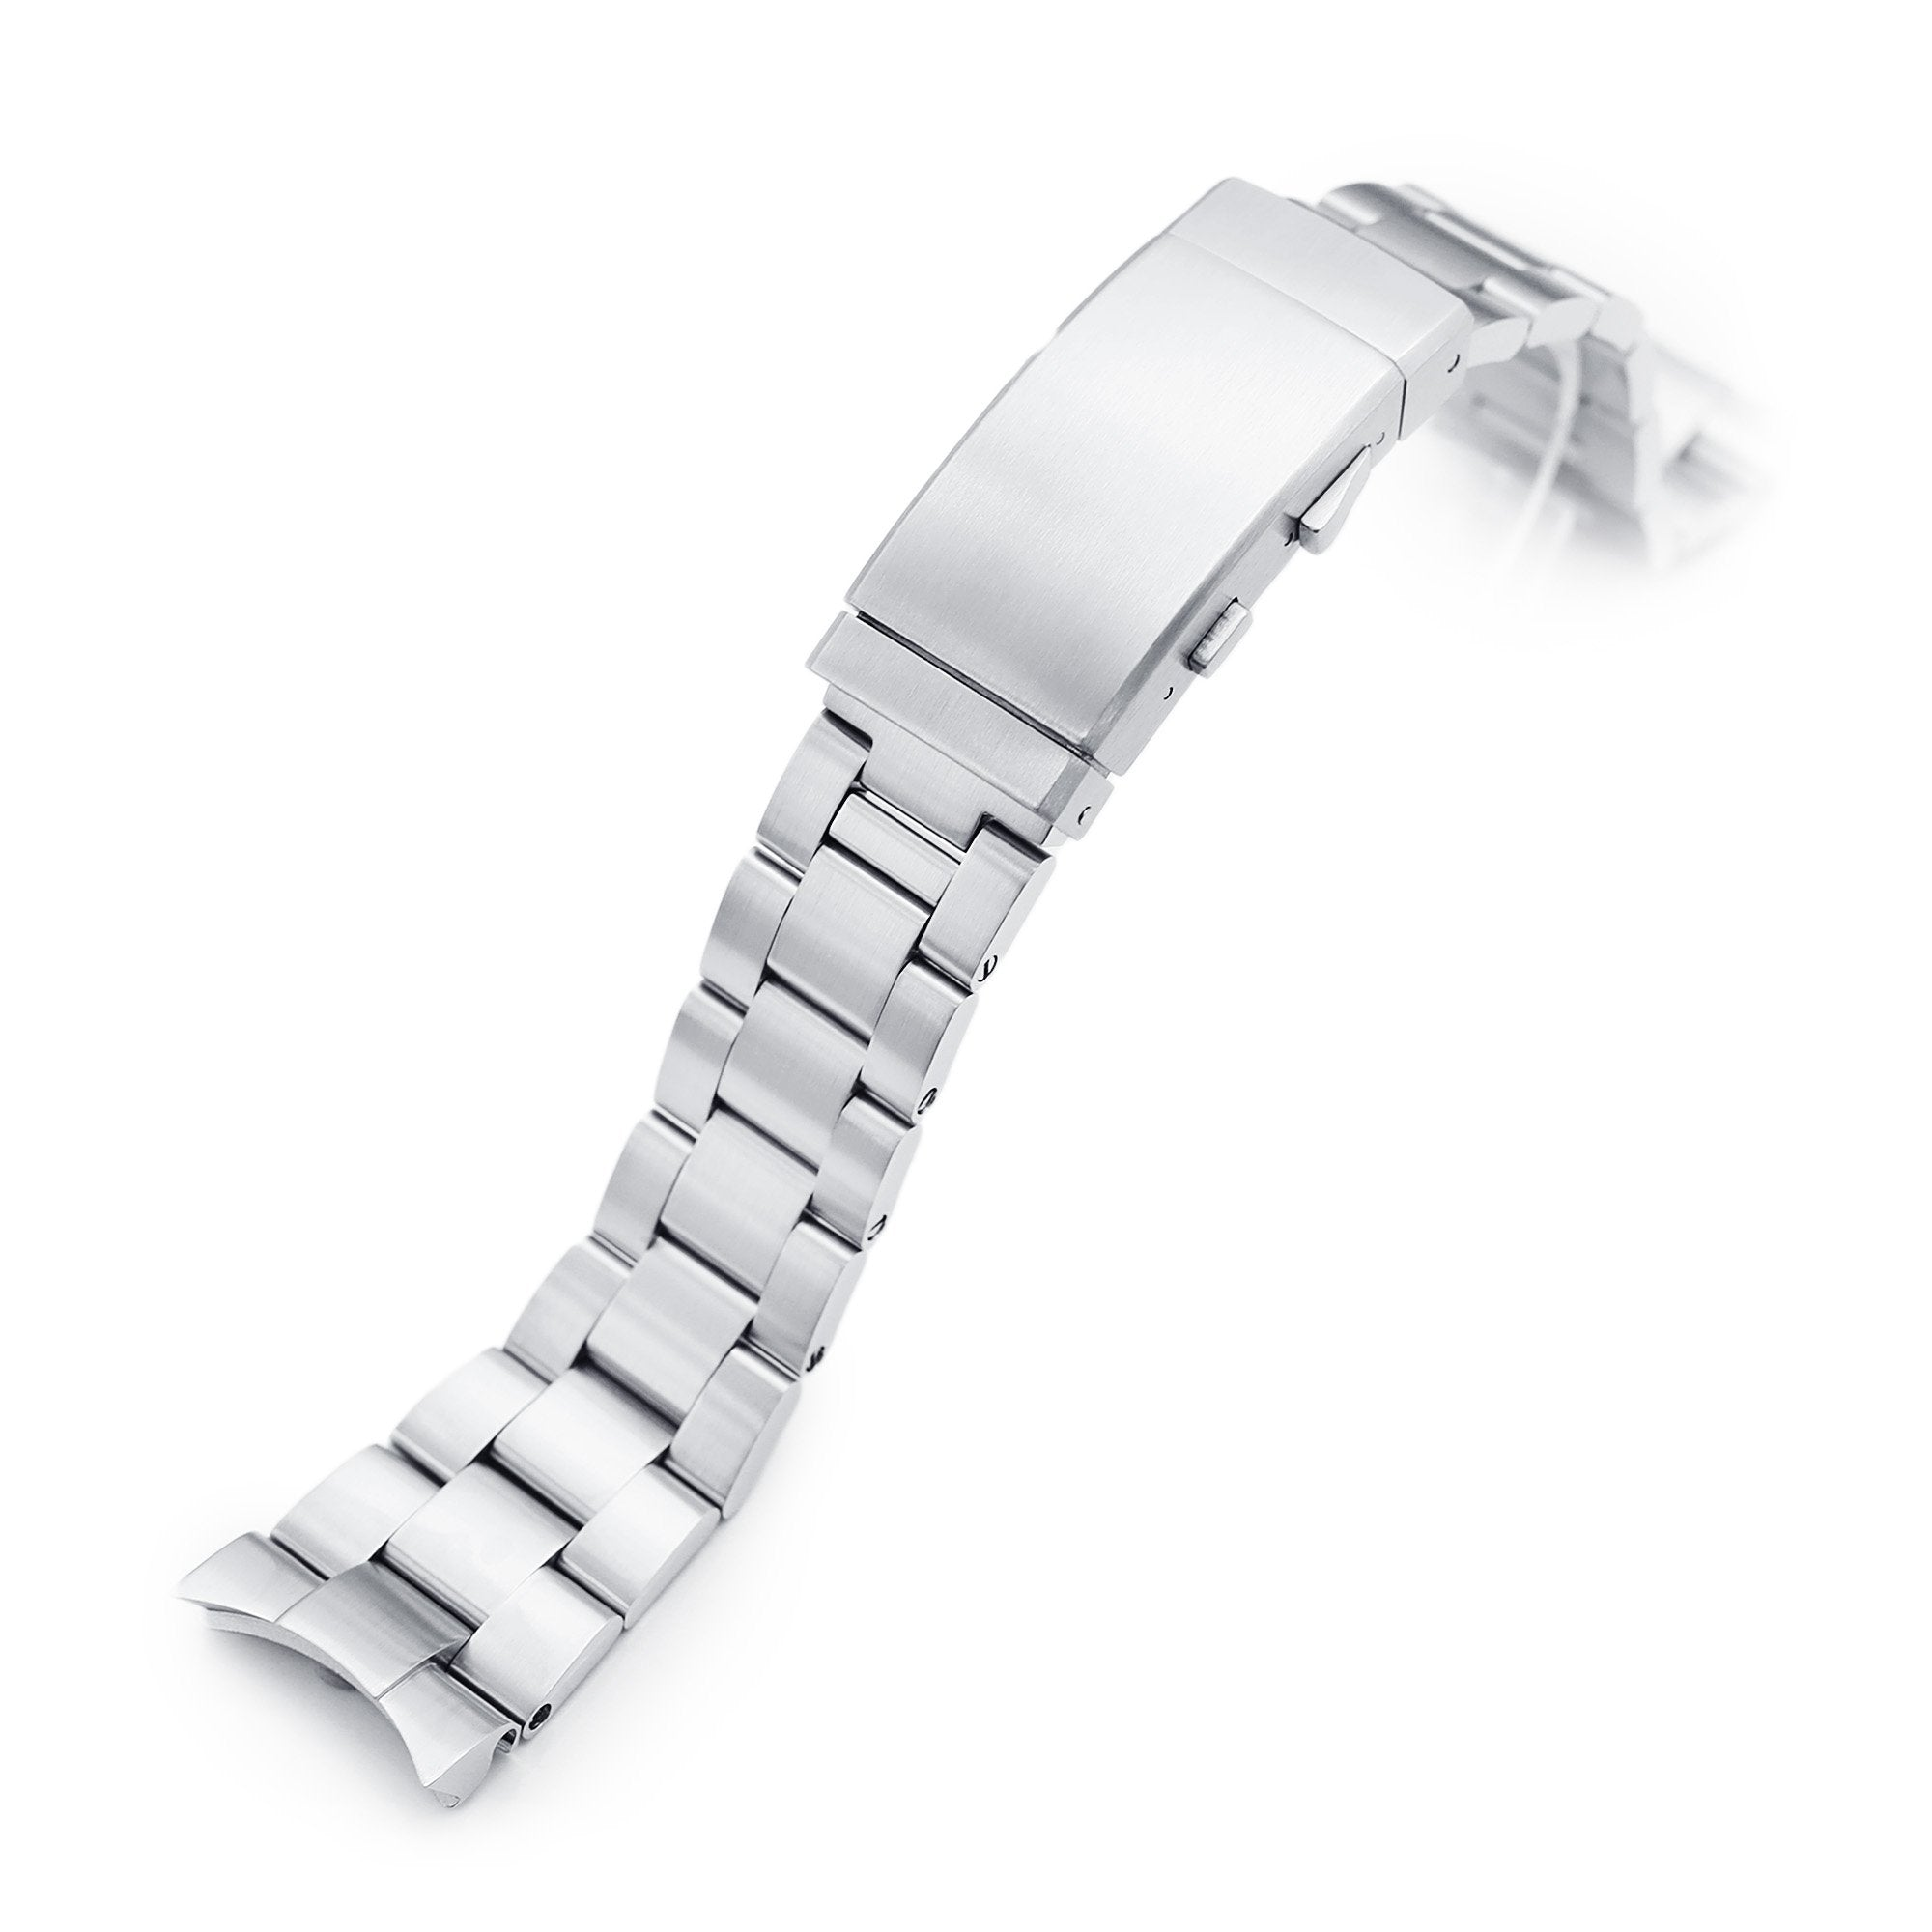 22mm Super-O Boyer 316L Stainless Steel Watch Bracelet for Orient Kamasu Brushed Wetsuit Ratchet Buckle Strapcode Watch Bands